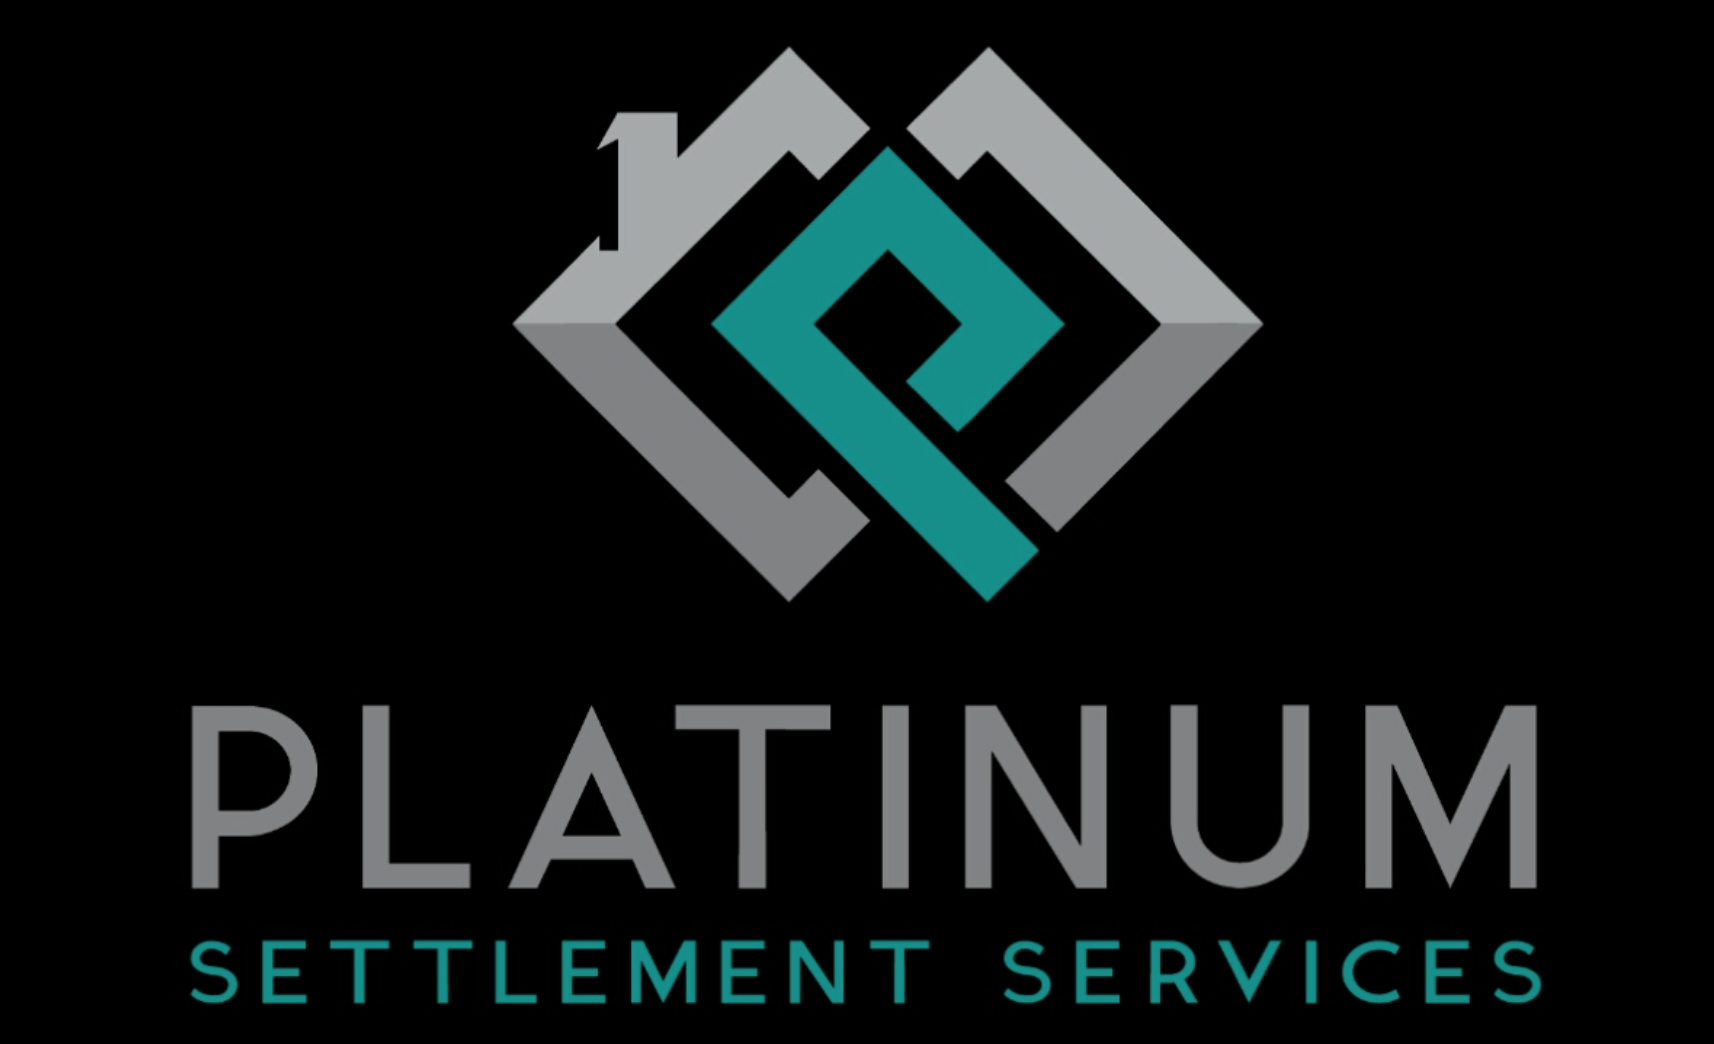 Platinum Settlement Services